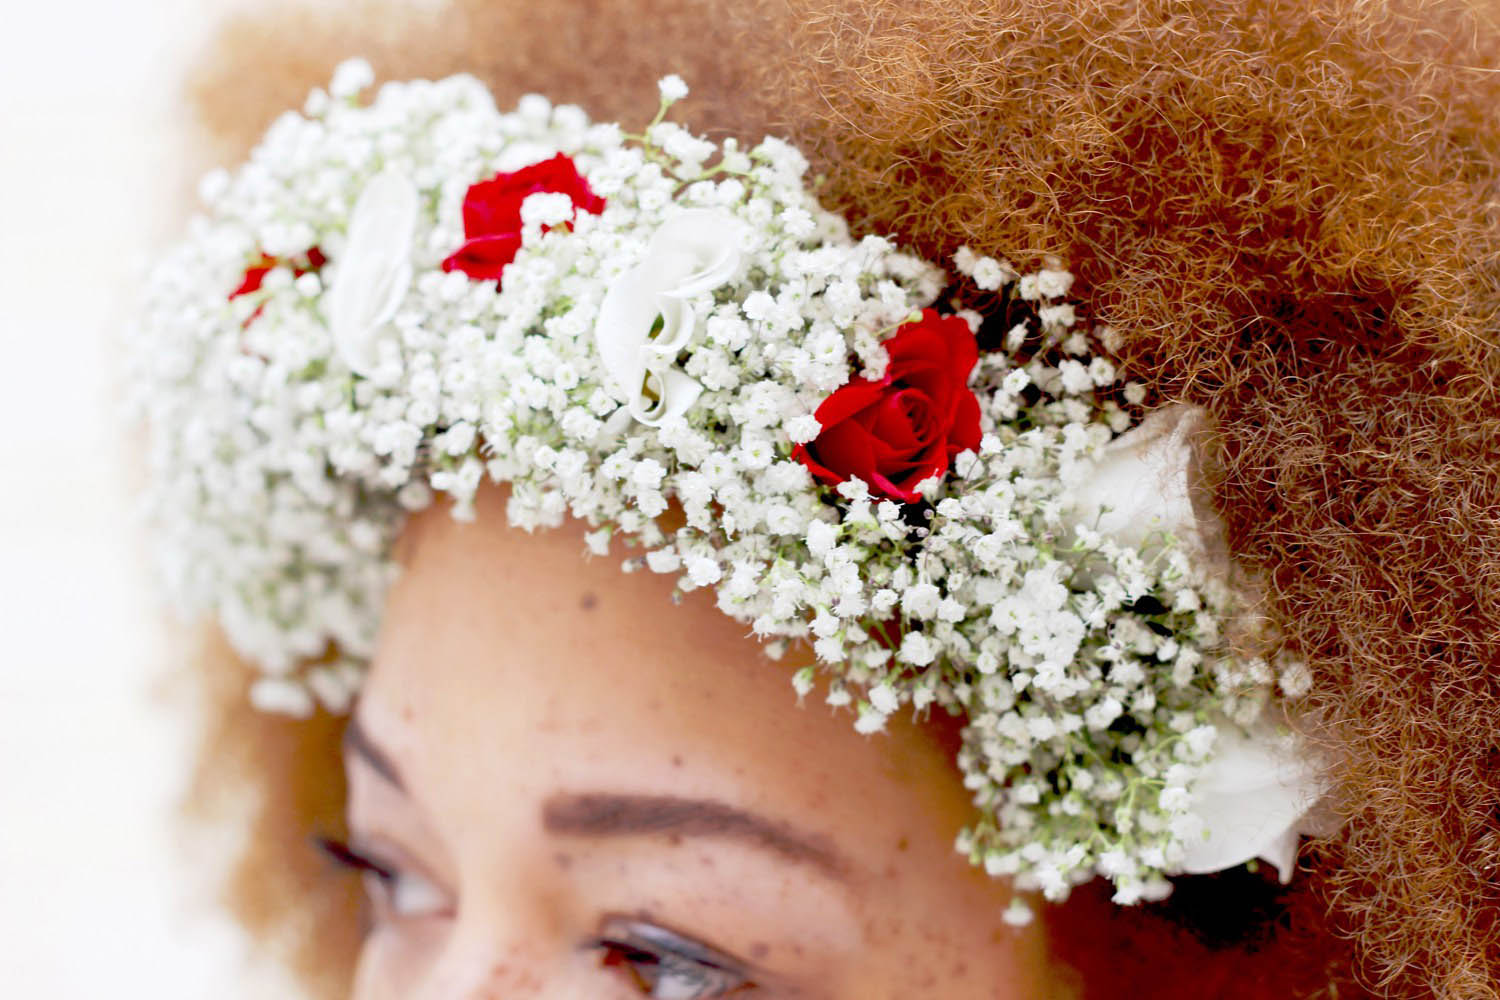 fatimayarie-afro-redcurls-floralwreath-hashmagbloggerlounge-flowers-miflora-img_0365